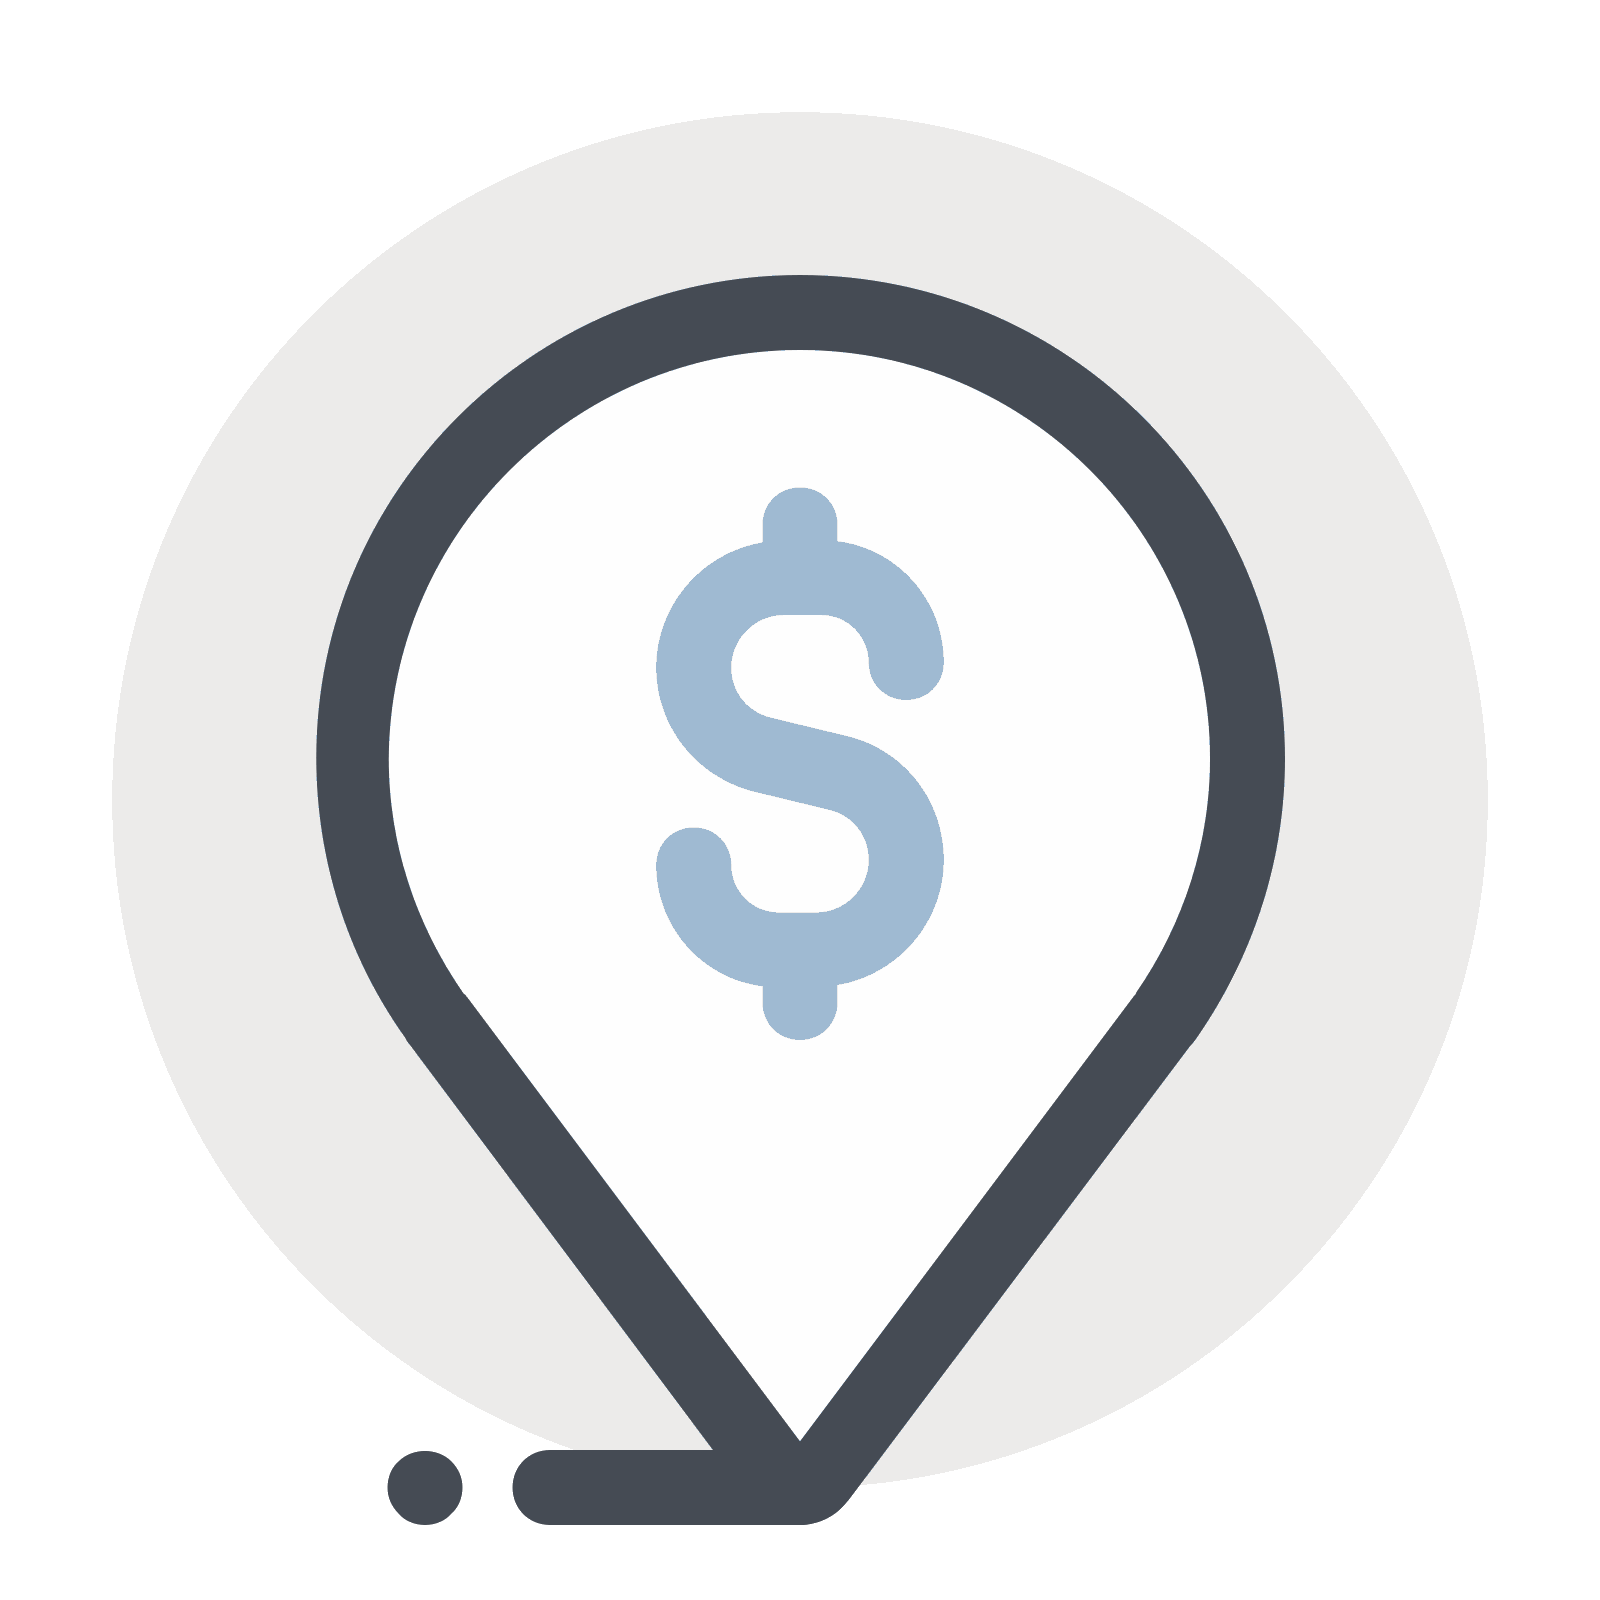 Svg markers address. Dollar place marker icon